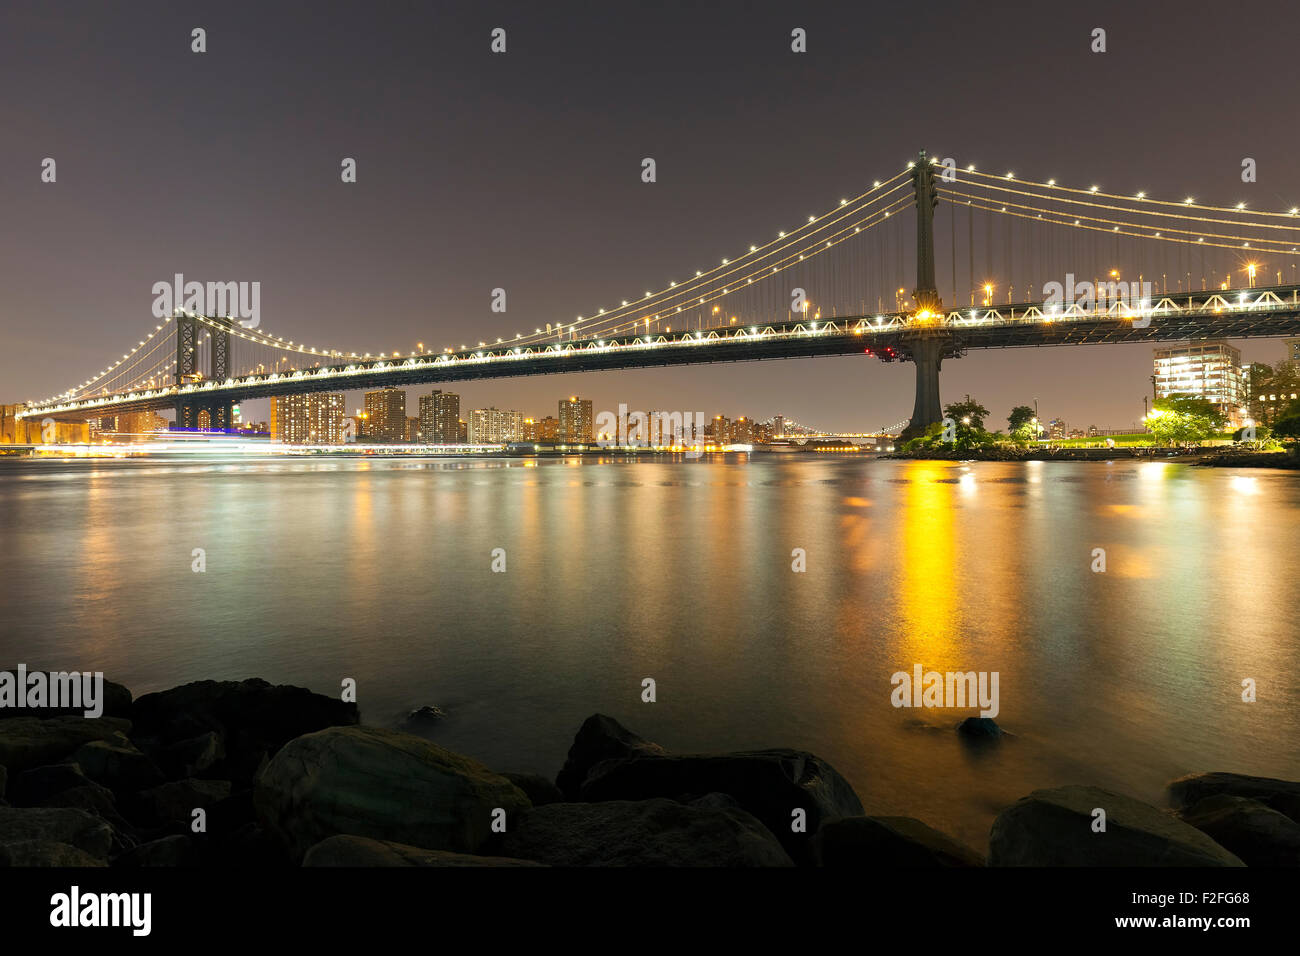 Manhattan bridge at night, New York City, USA. - Stock Image